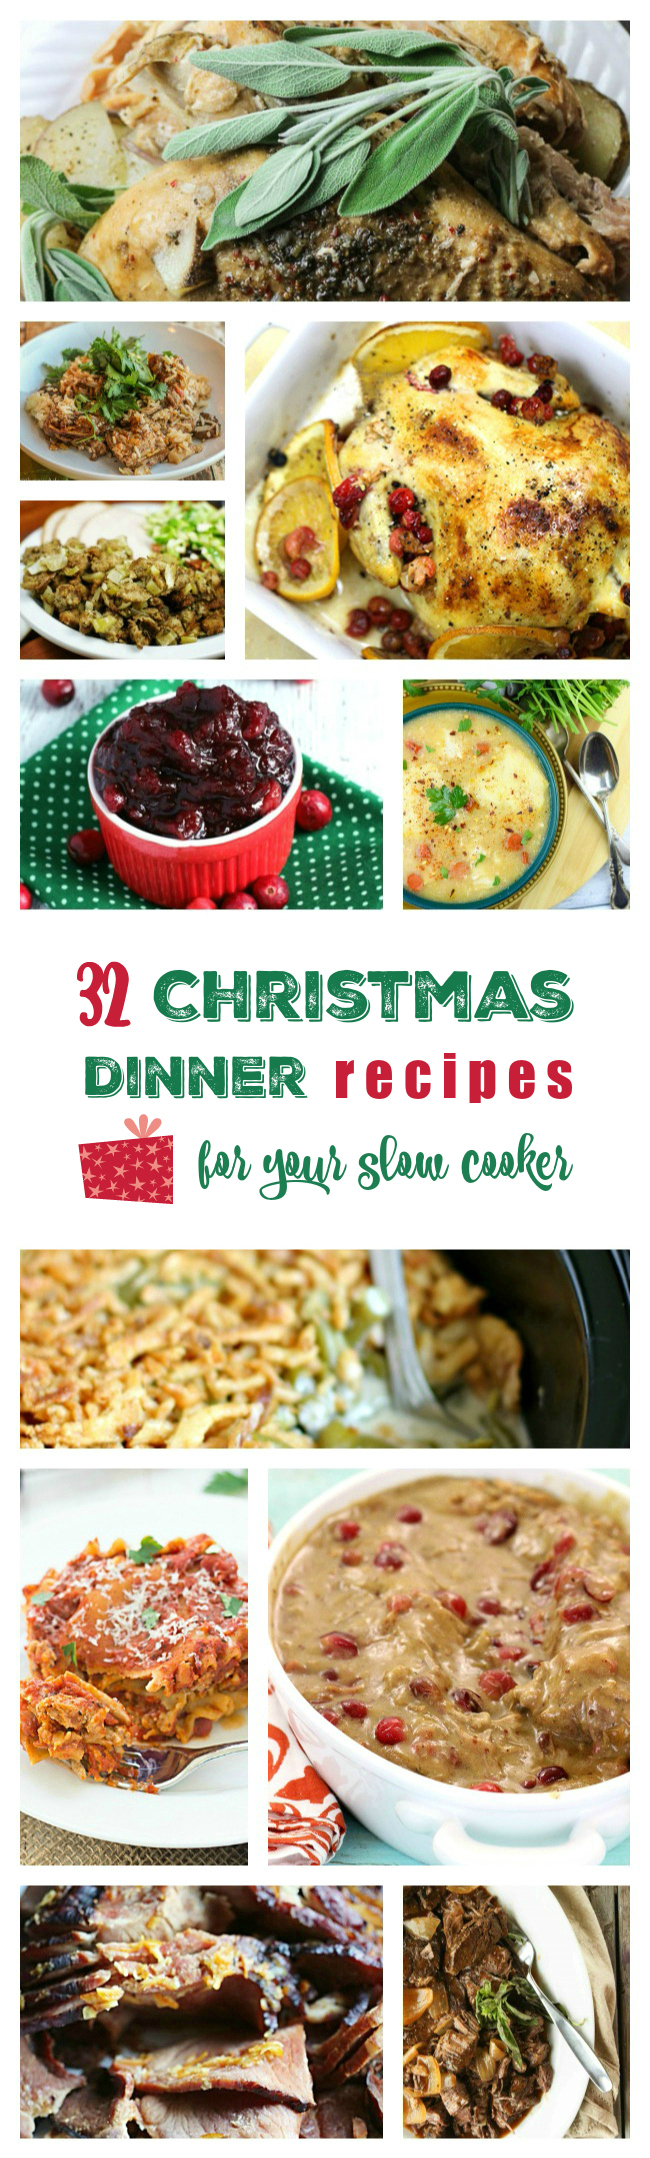 Yummers. Christmas Dinner recipes for the Crock Pot! Spend more time with friends and family and less time fussing over the oven.